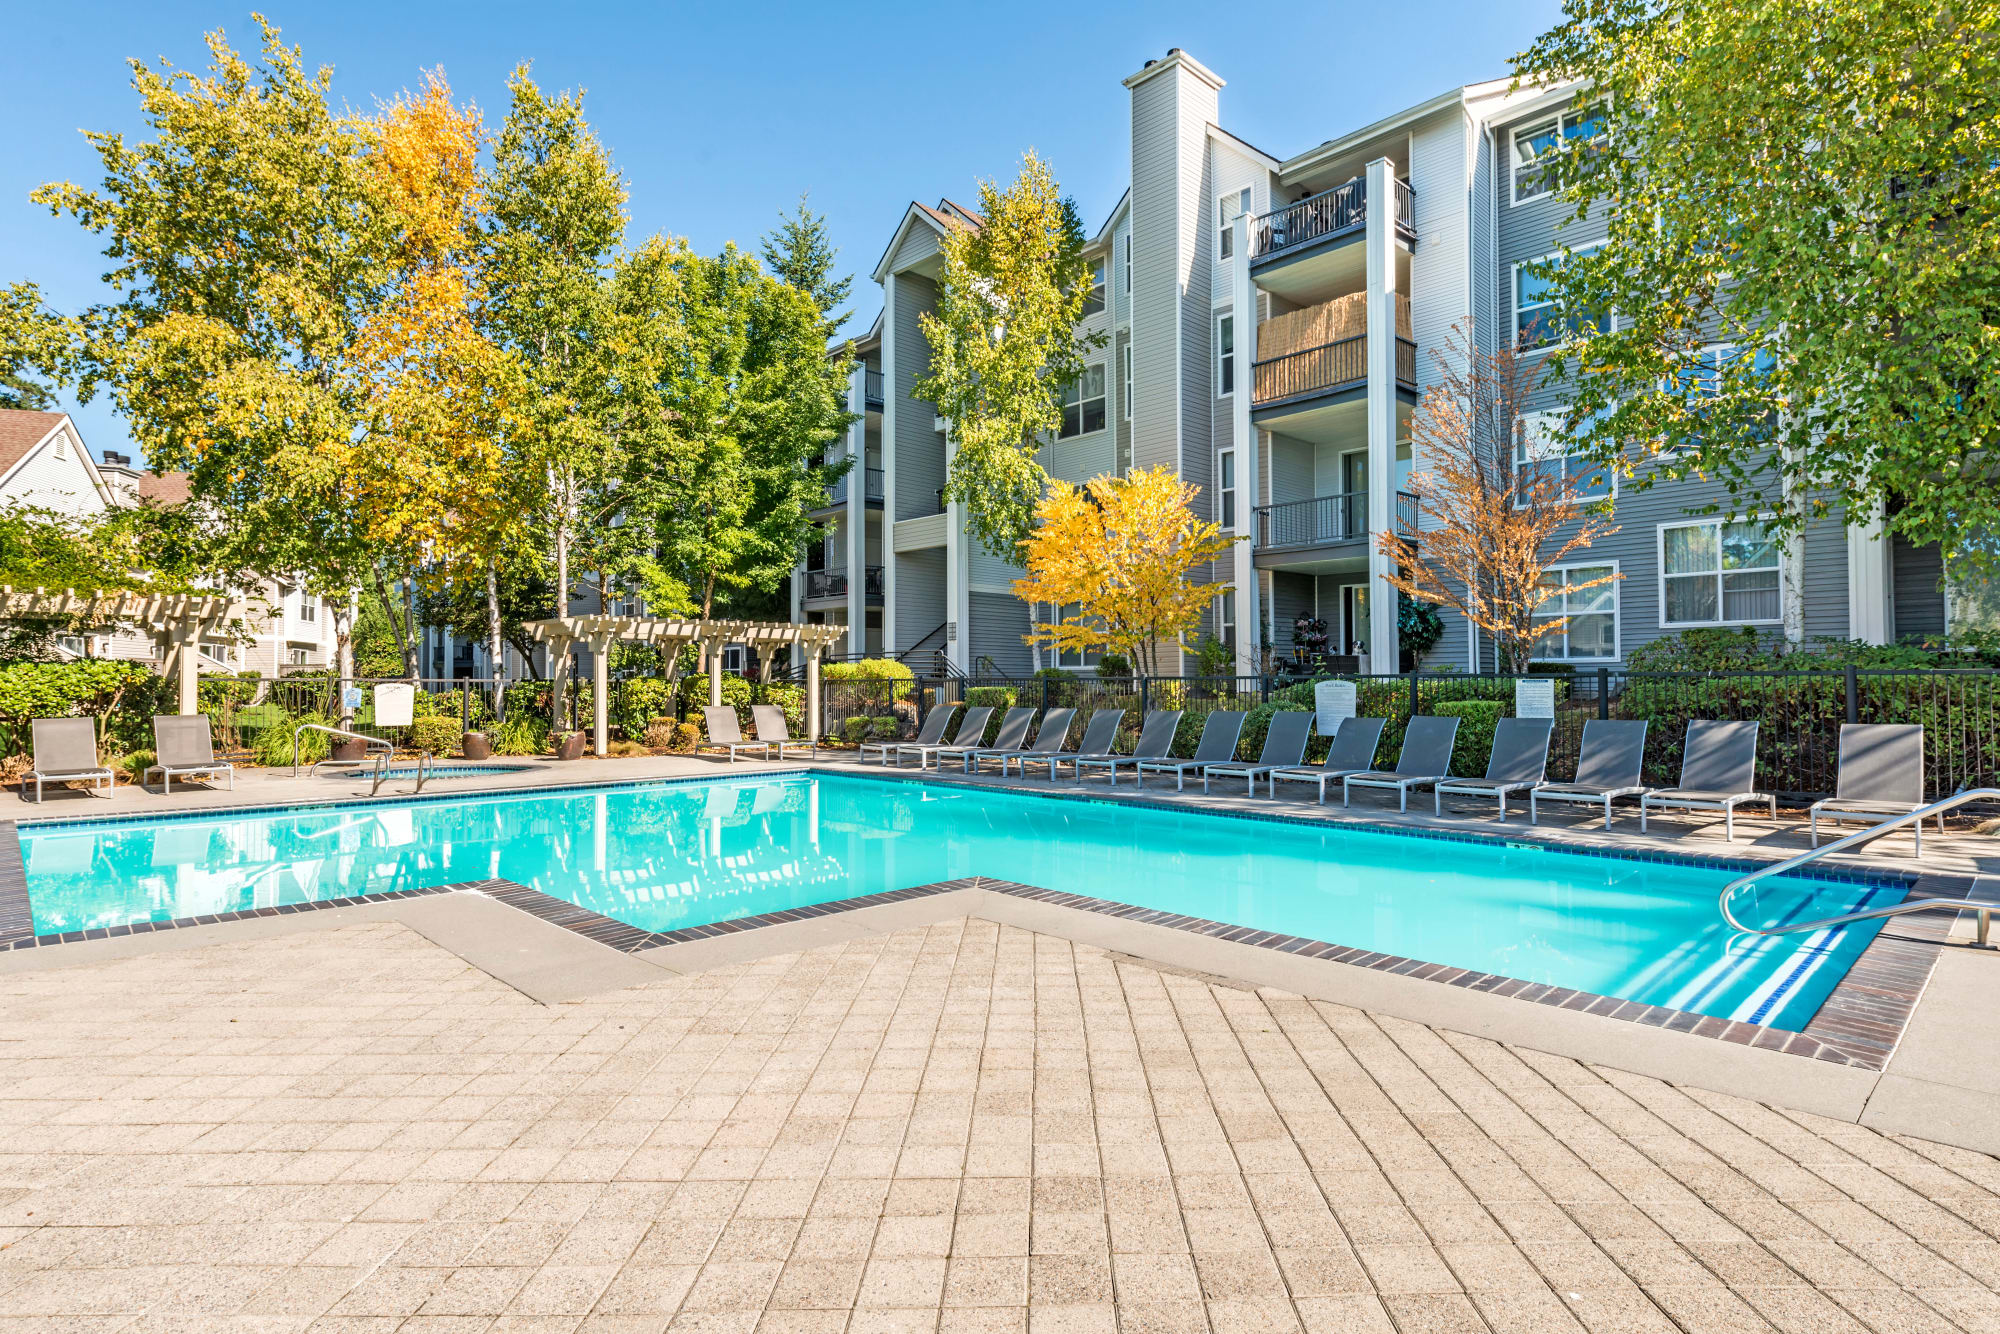 Expansive Pool Deck at HighGrove Apartments in Everett, WA